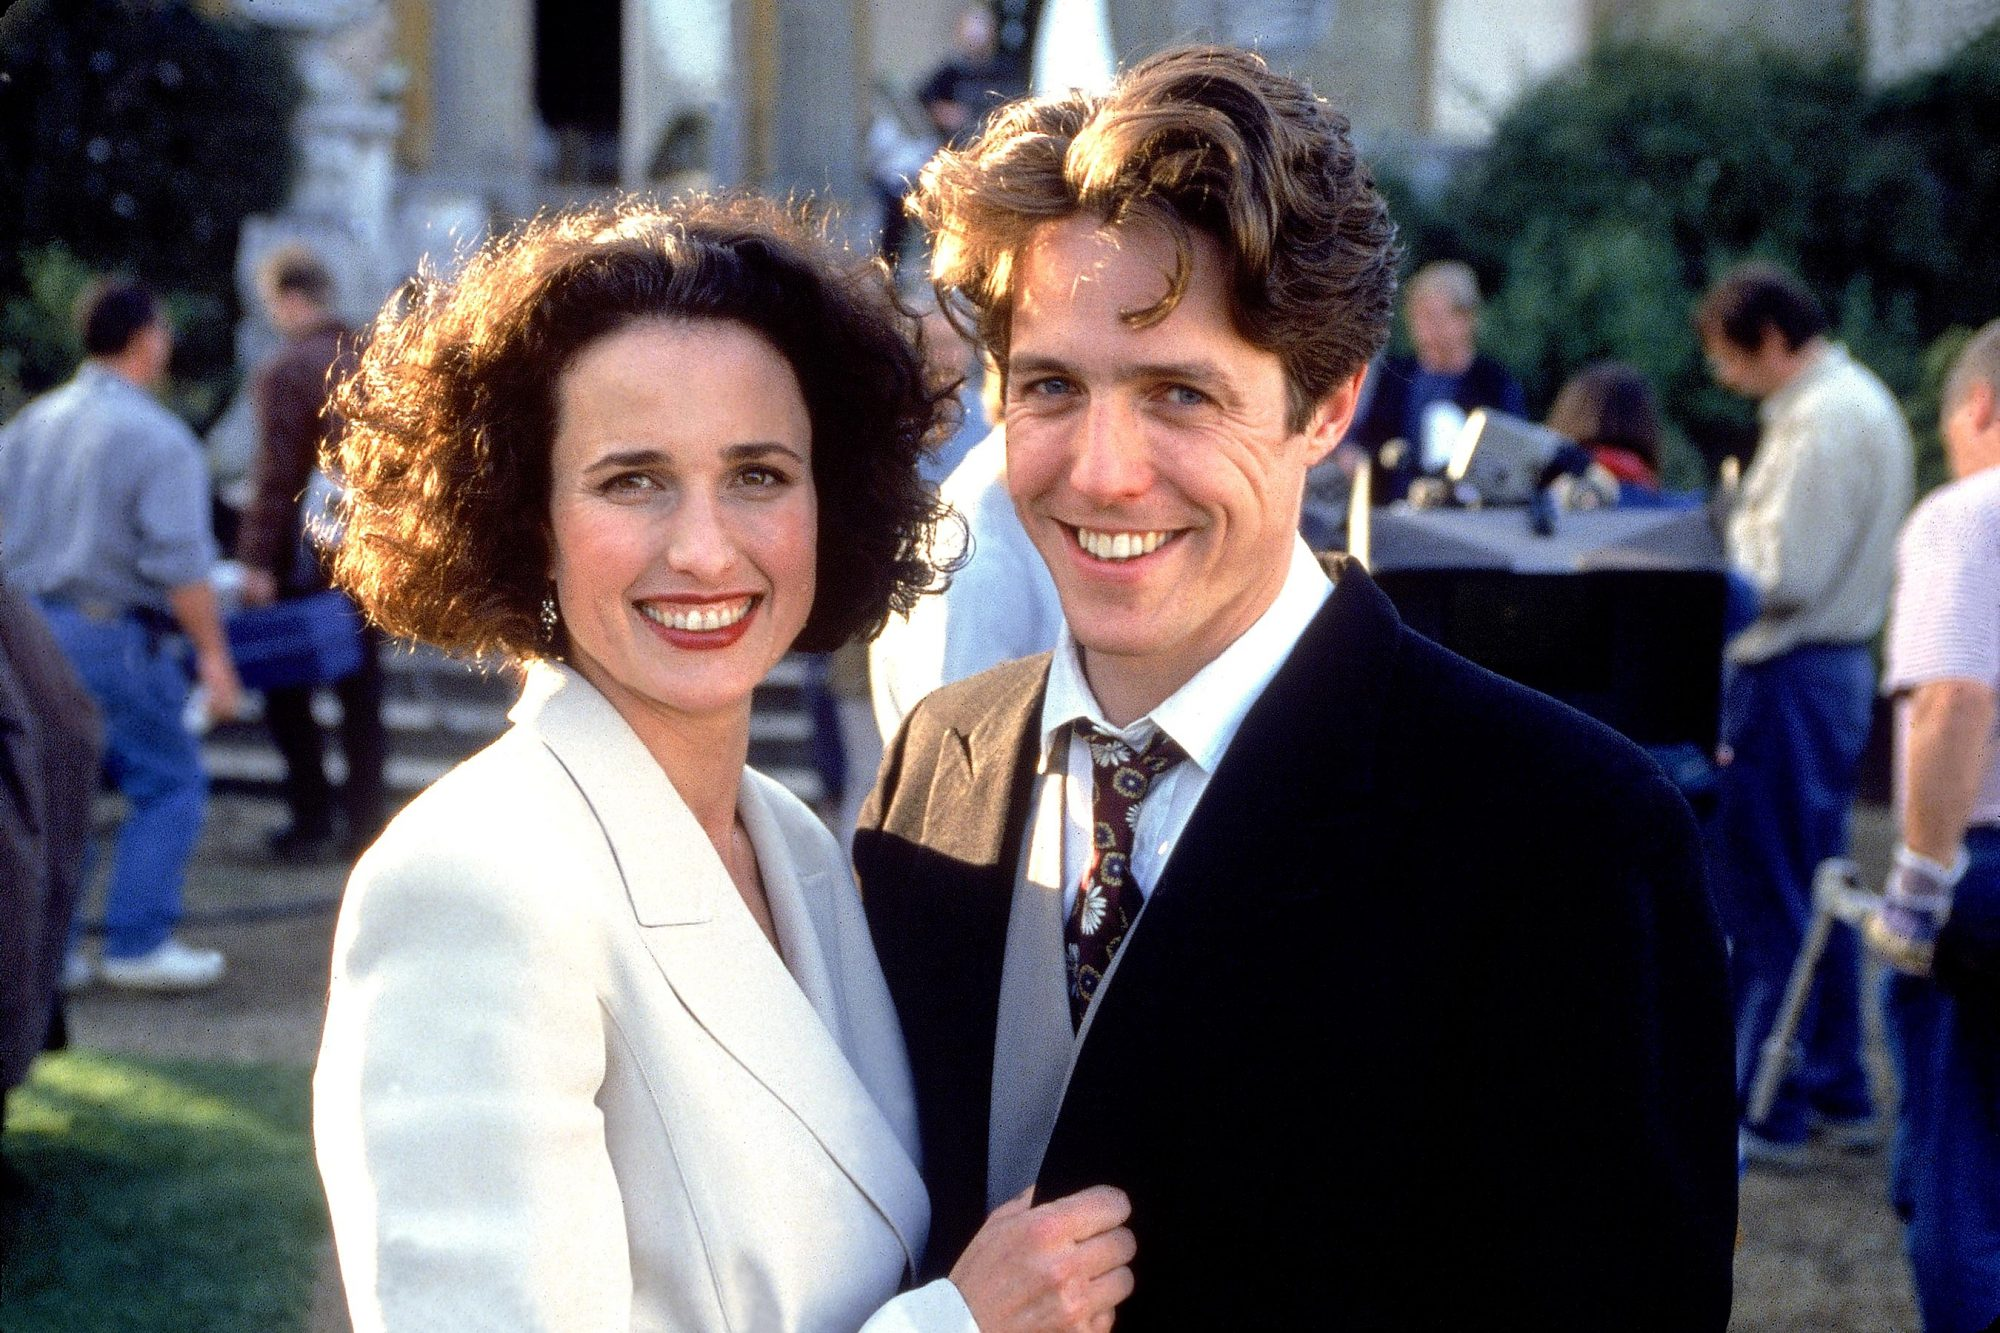 Four Weddings and a Funeral (1994)Andie MacDowell and Hugh Grant